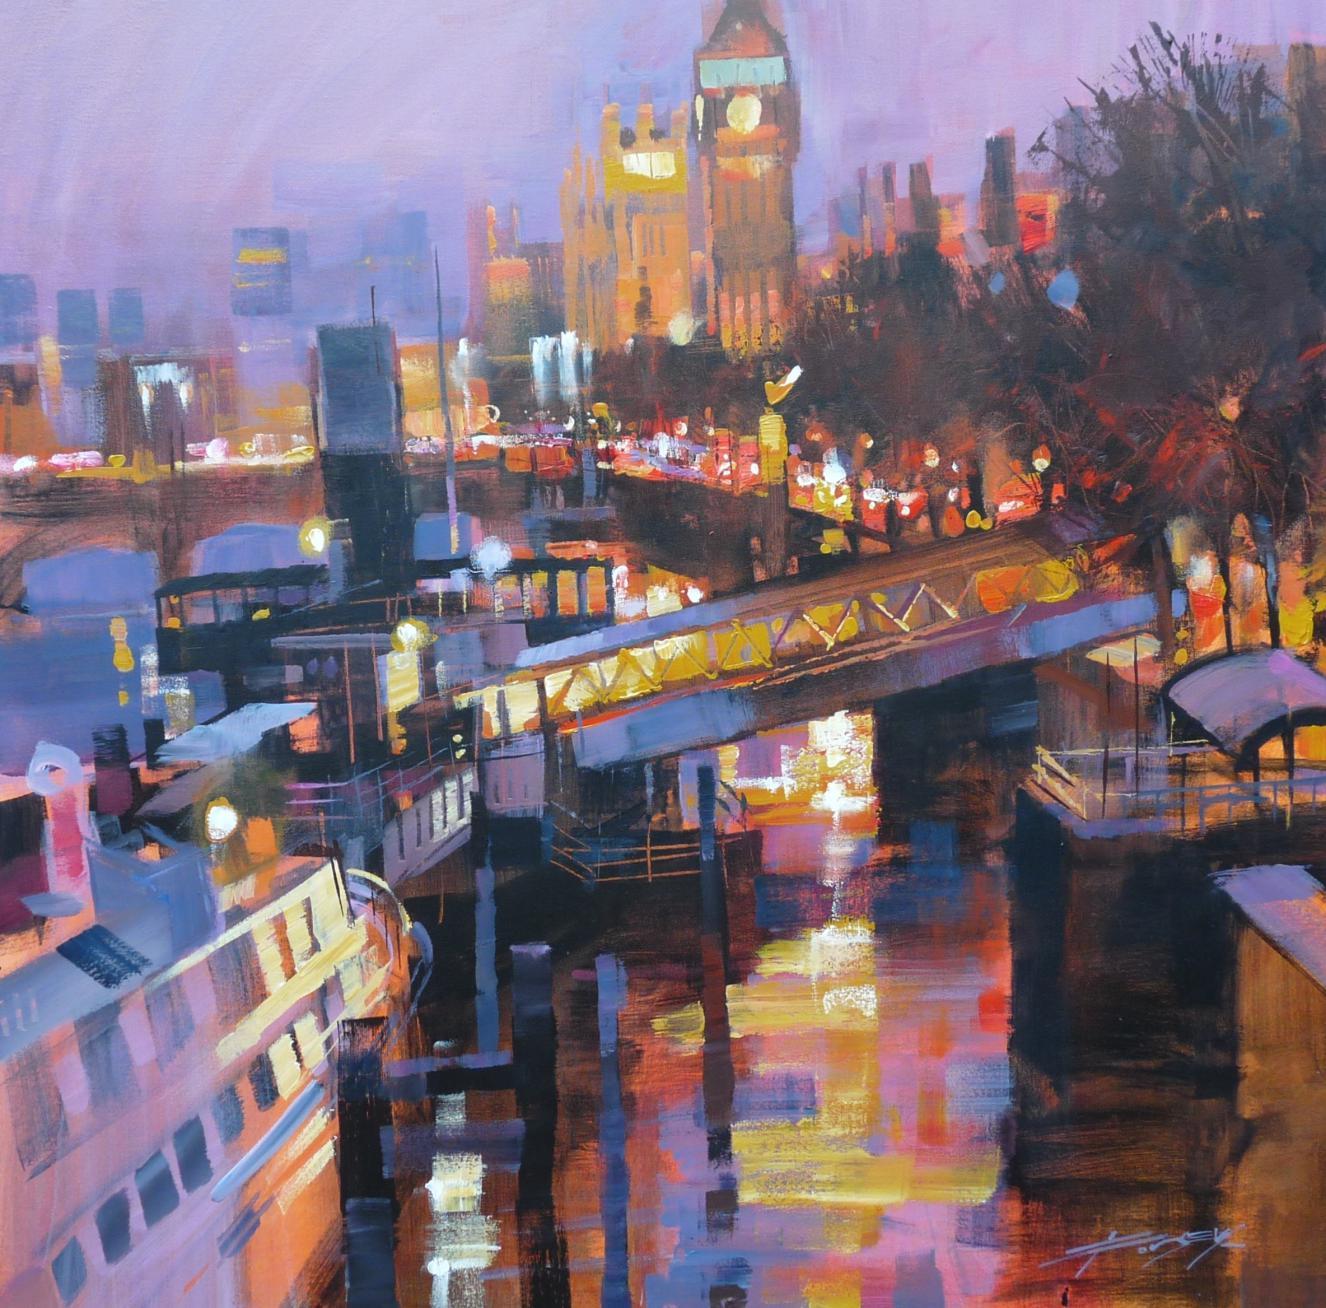 Evening approaches, The Embankment by Chris Forsey